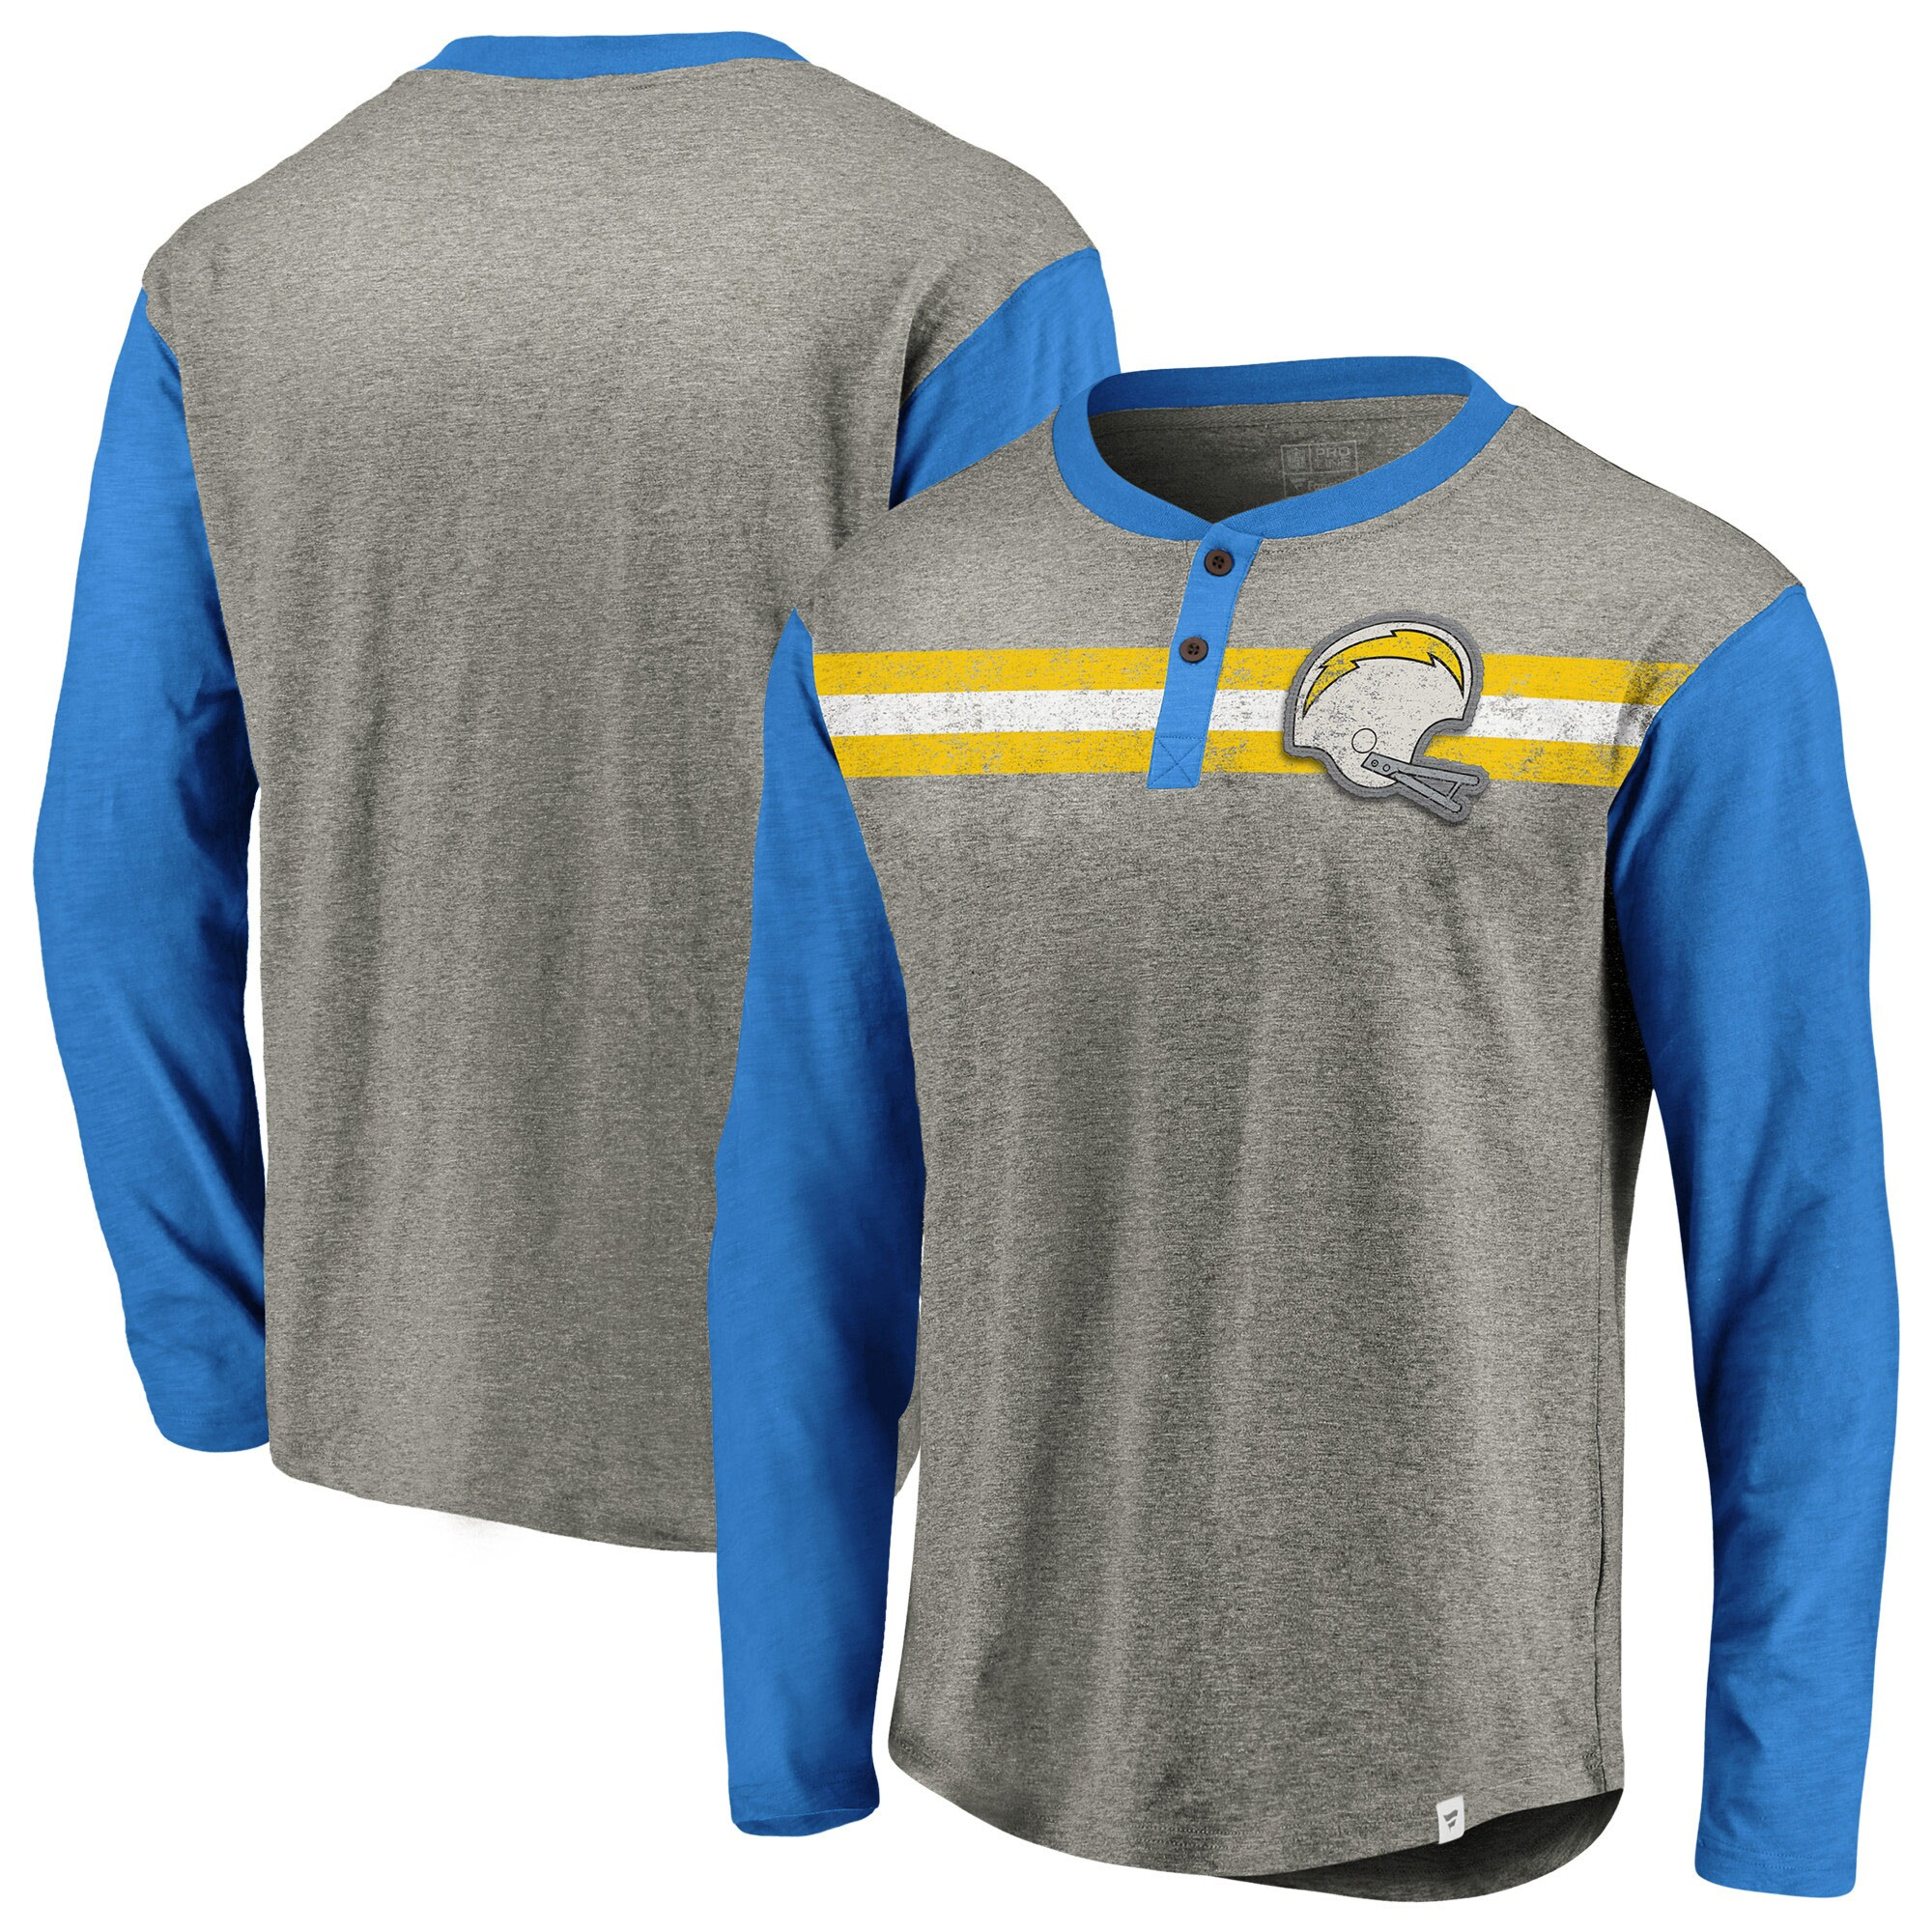 Los Angeles Chargers NFL Pro Line by Fanatics Branded True Classics Henley Long Sleeve T-Shirt - Heathered Gray/Powder Blue